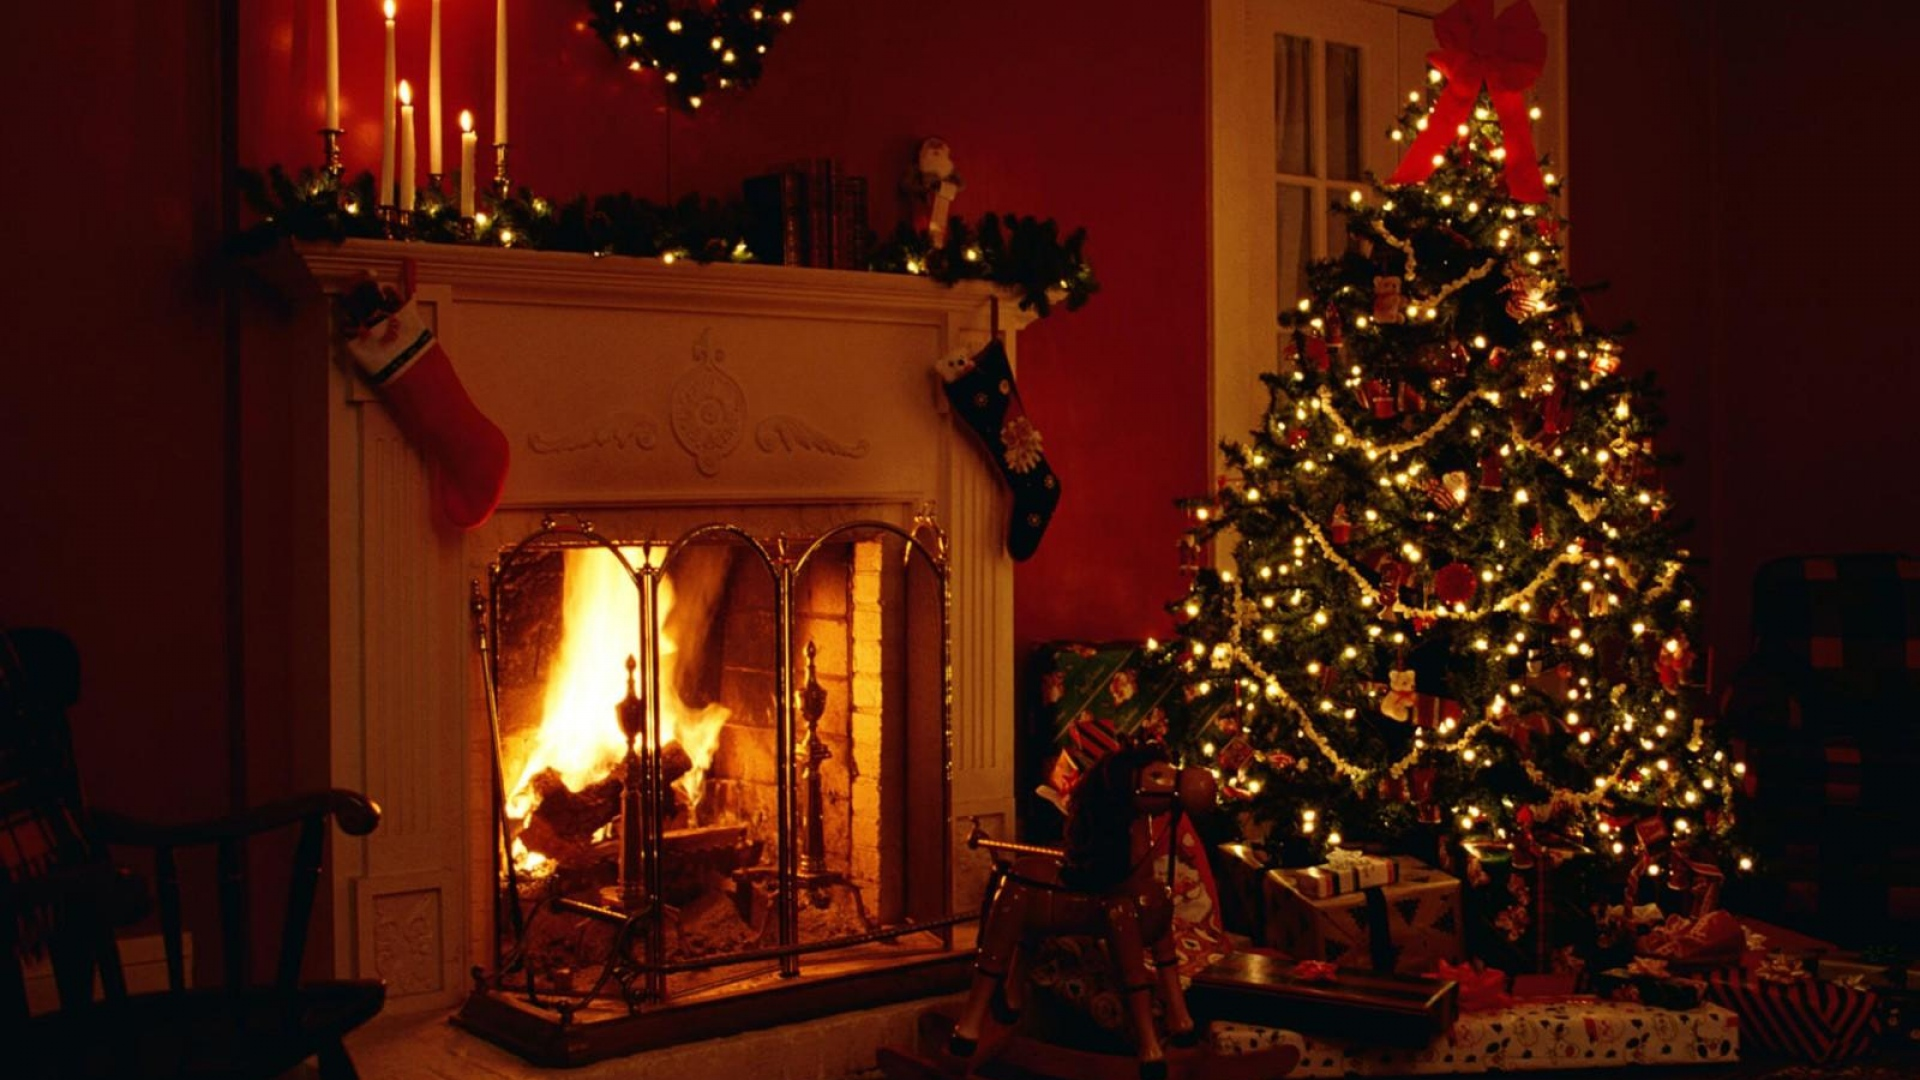 Download Wallpaper 1920x1080 Christmas Holiday Fireplace